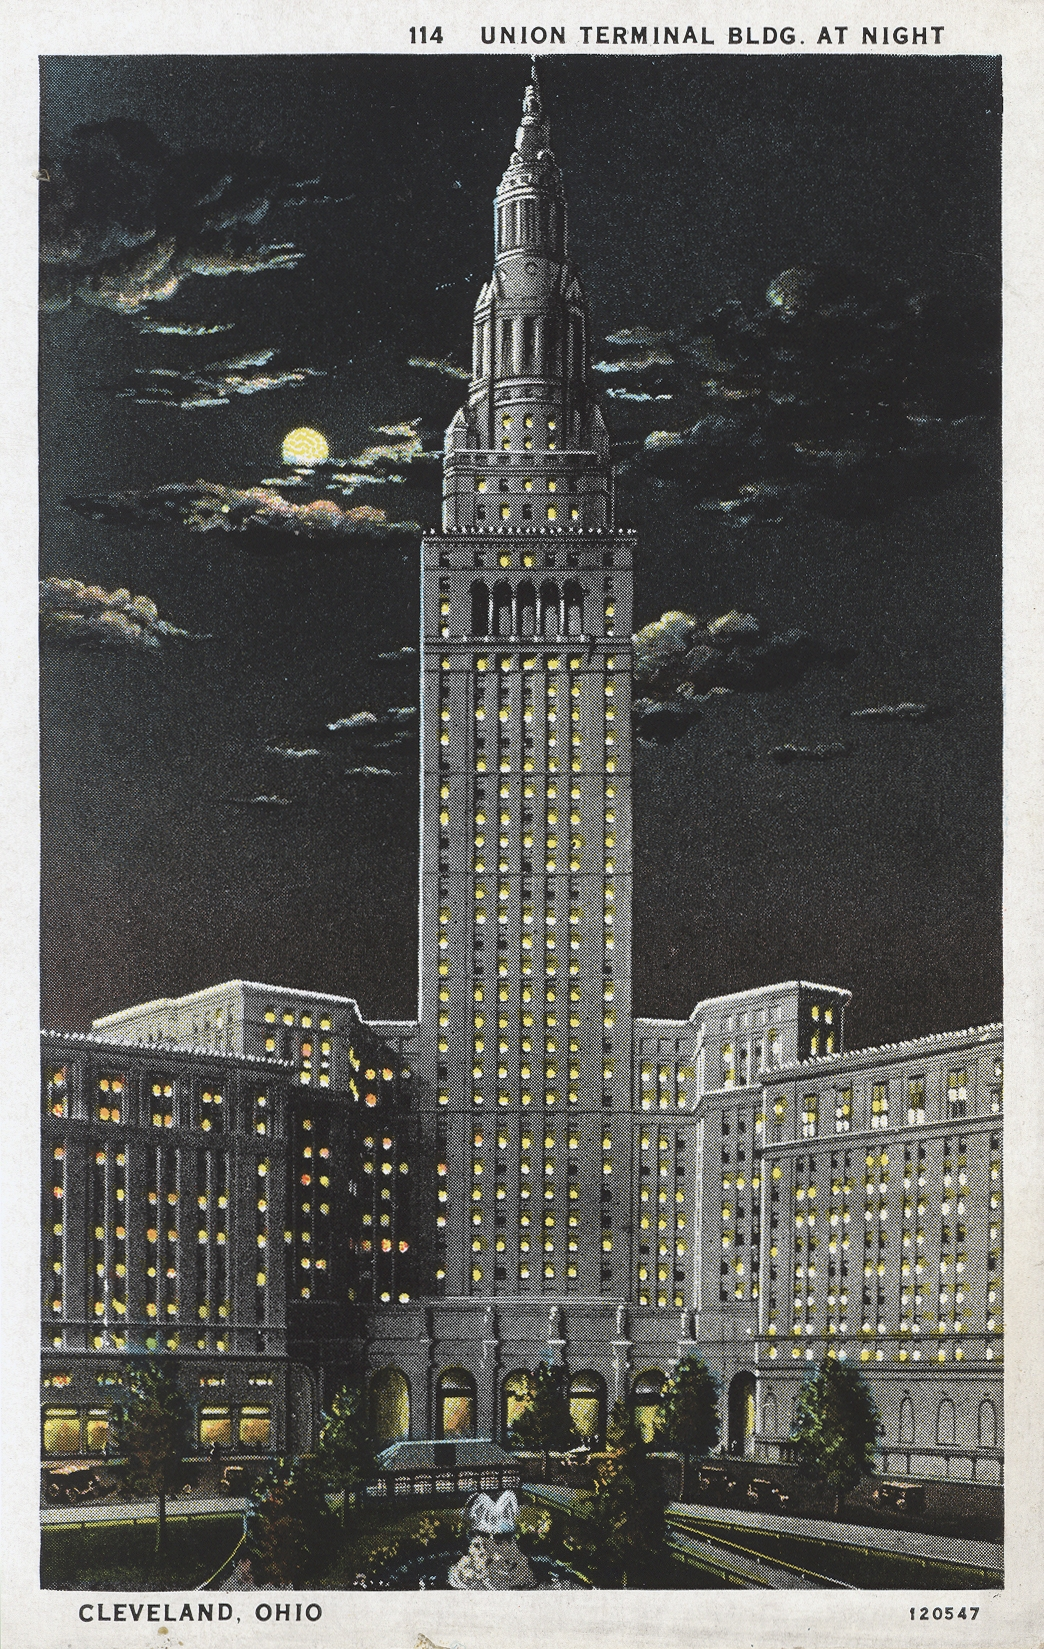 Postcard with a color illustration of the Union Railroad Terminal building at night.